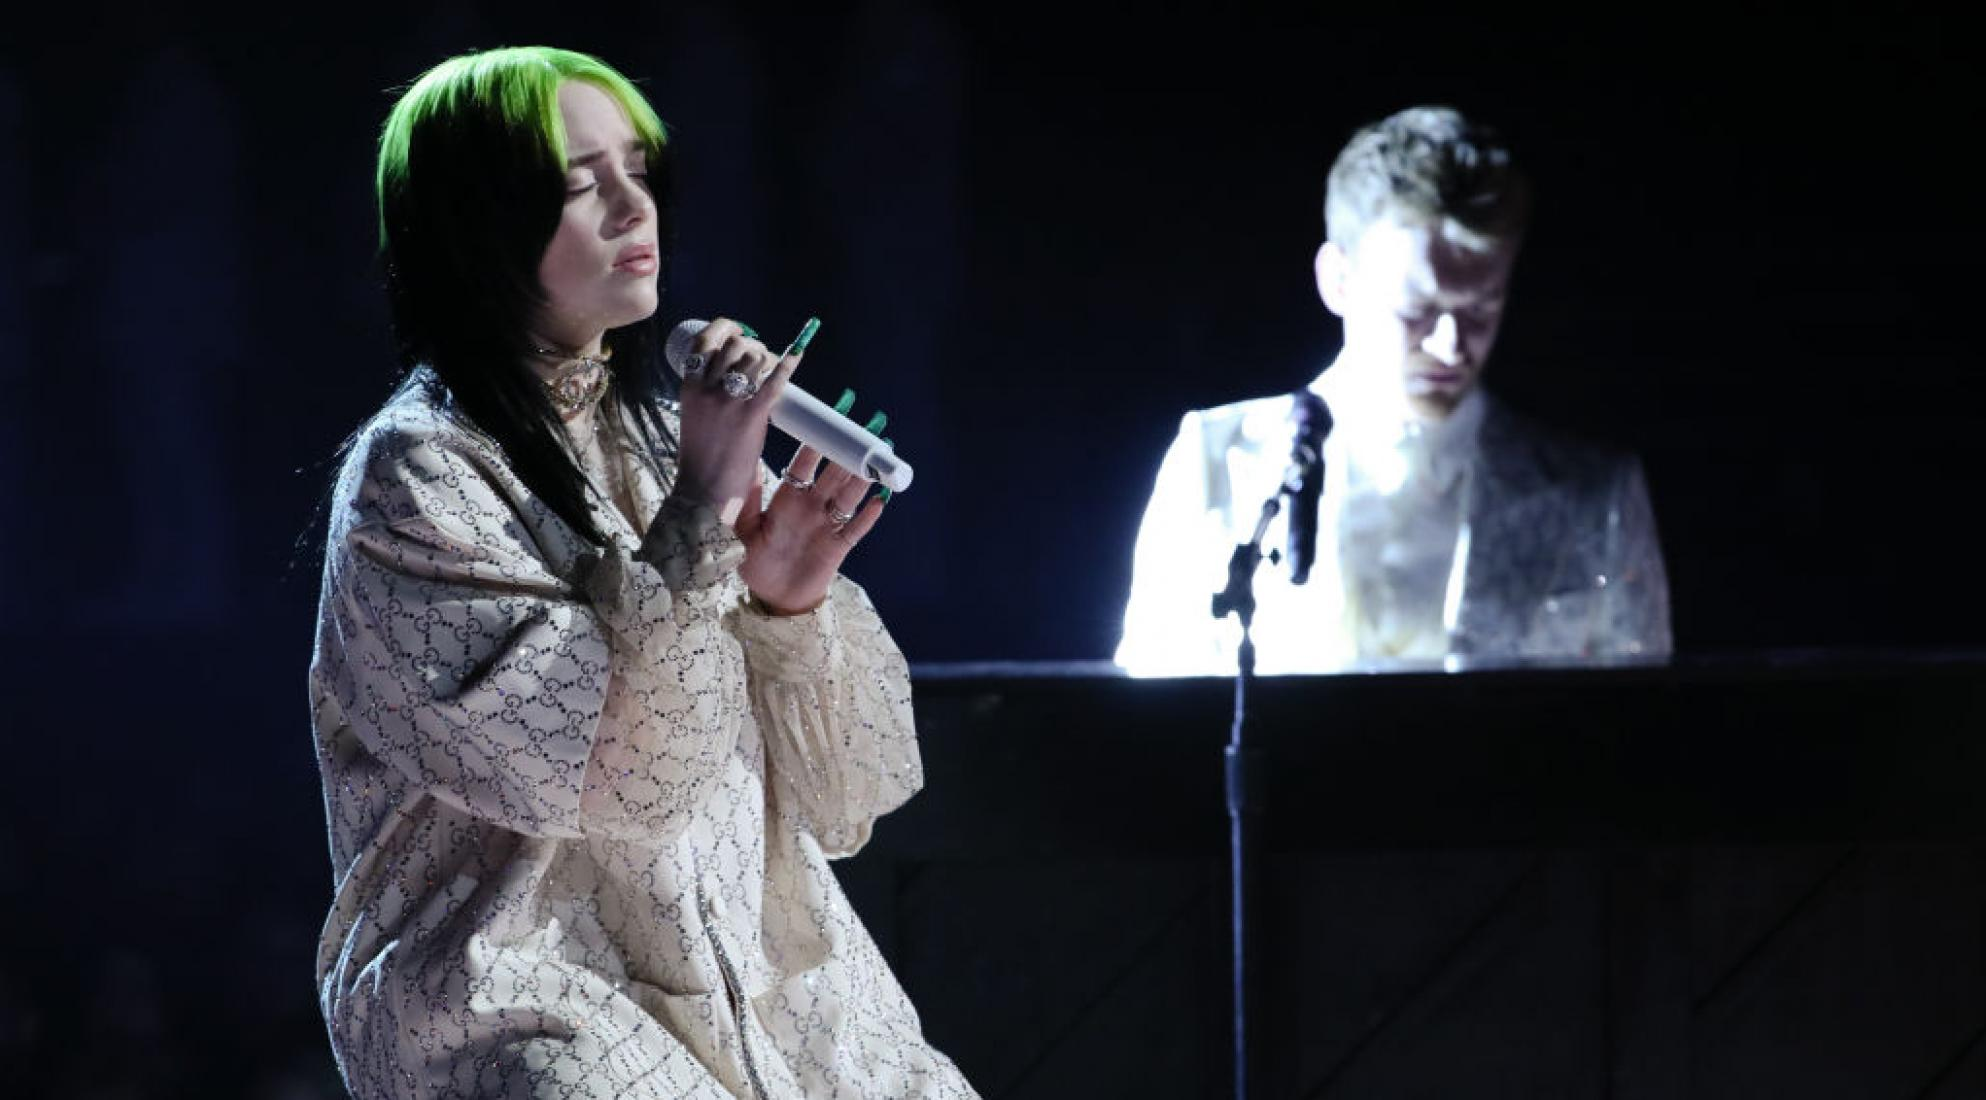 Billie Eilish performs at the 2020 GRAMMYs